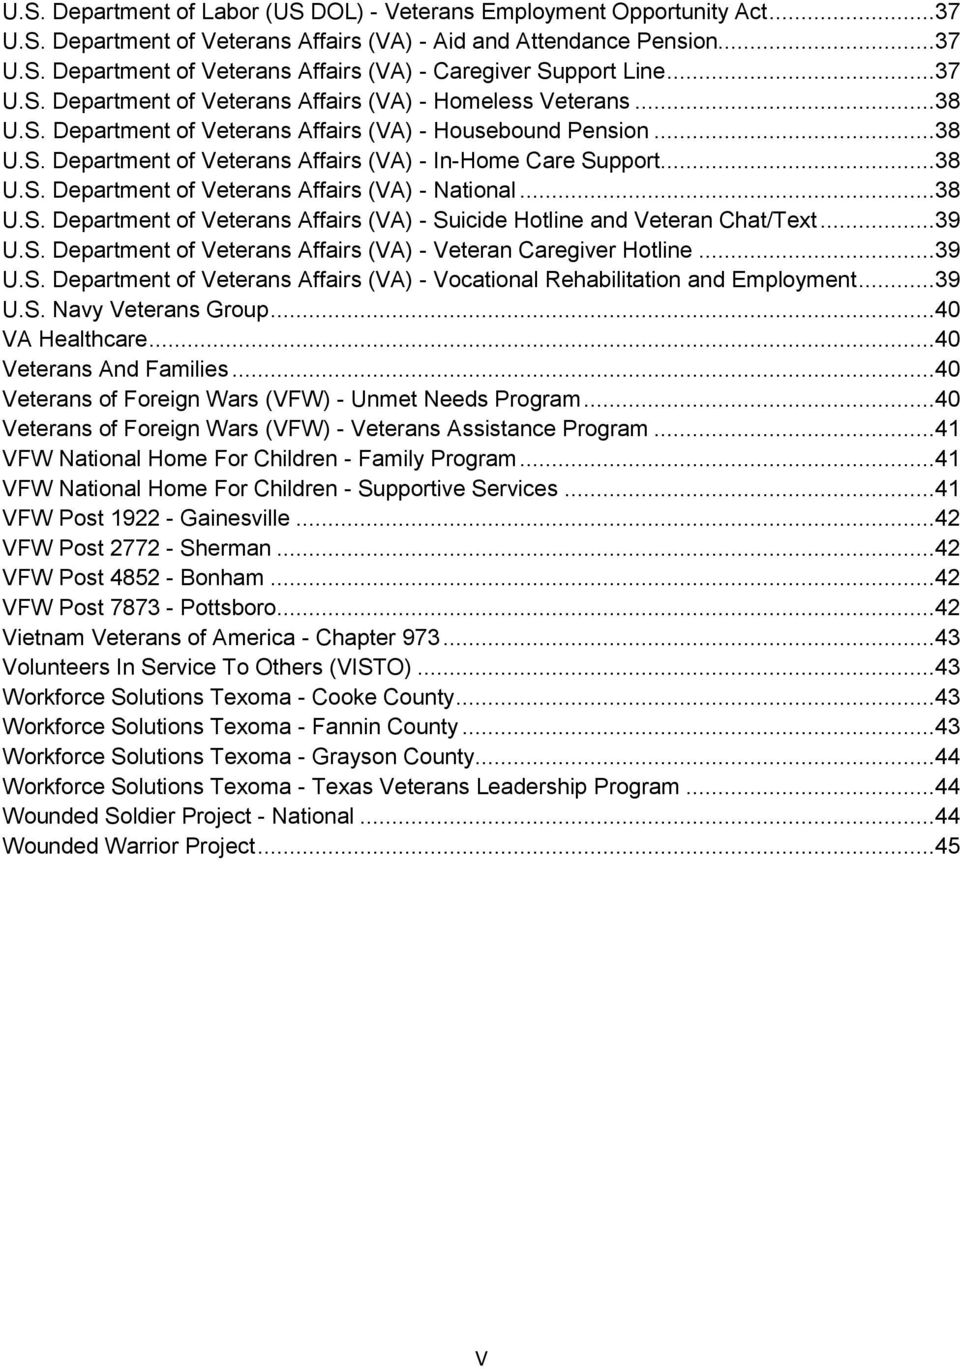 ..39 U.S. Deprtment Veterns ffirs (V) - Vetern Cregiver Hot...39 U.S. Deprtment Veterns ffirs (V) - Voctionl Rehbilittion nd Employment...39 U.S. Nvy Veterns Group...40 V Helthcre.